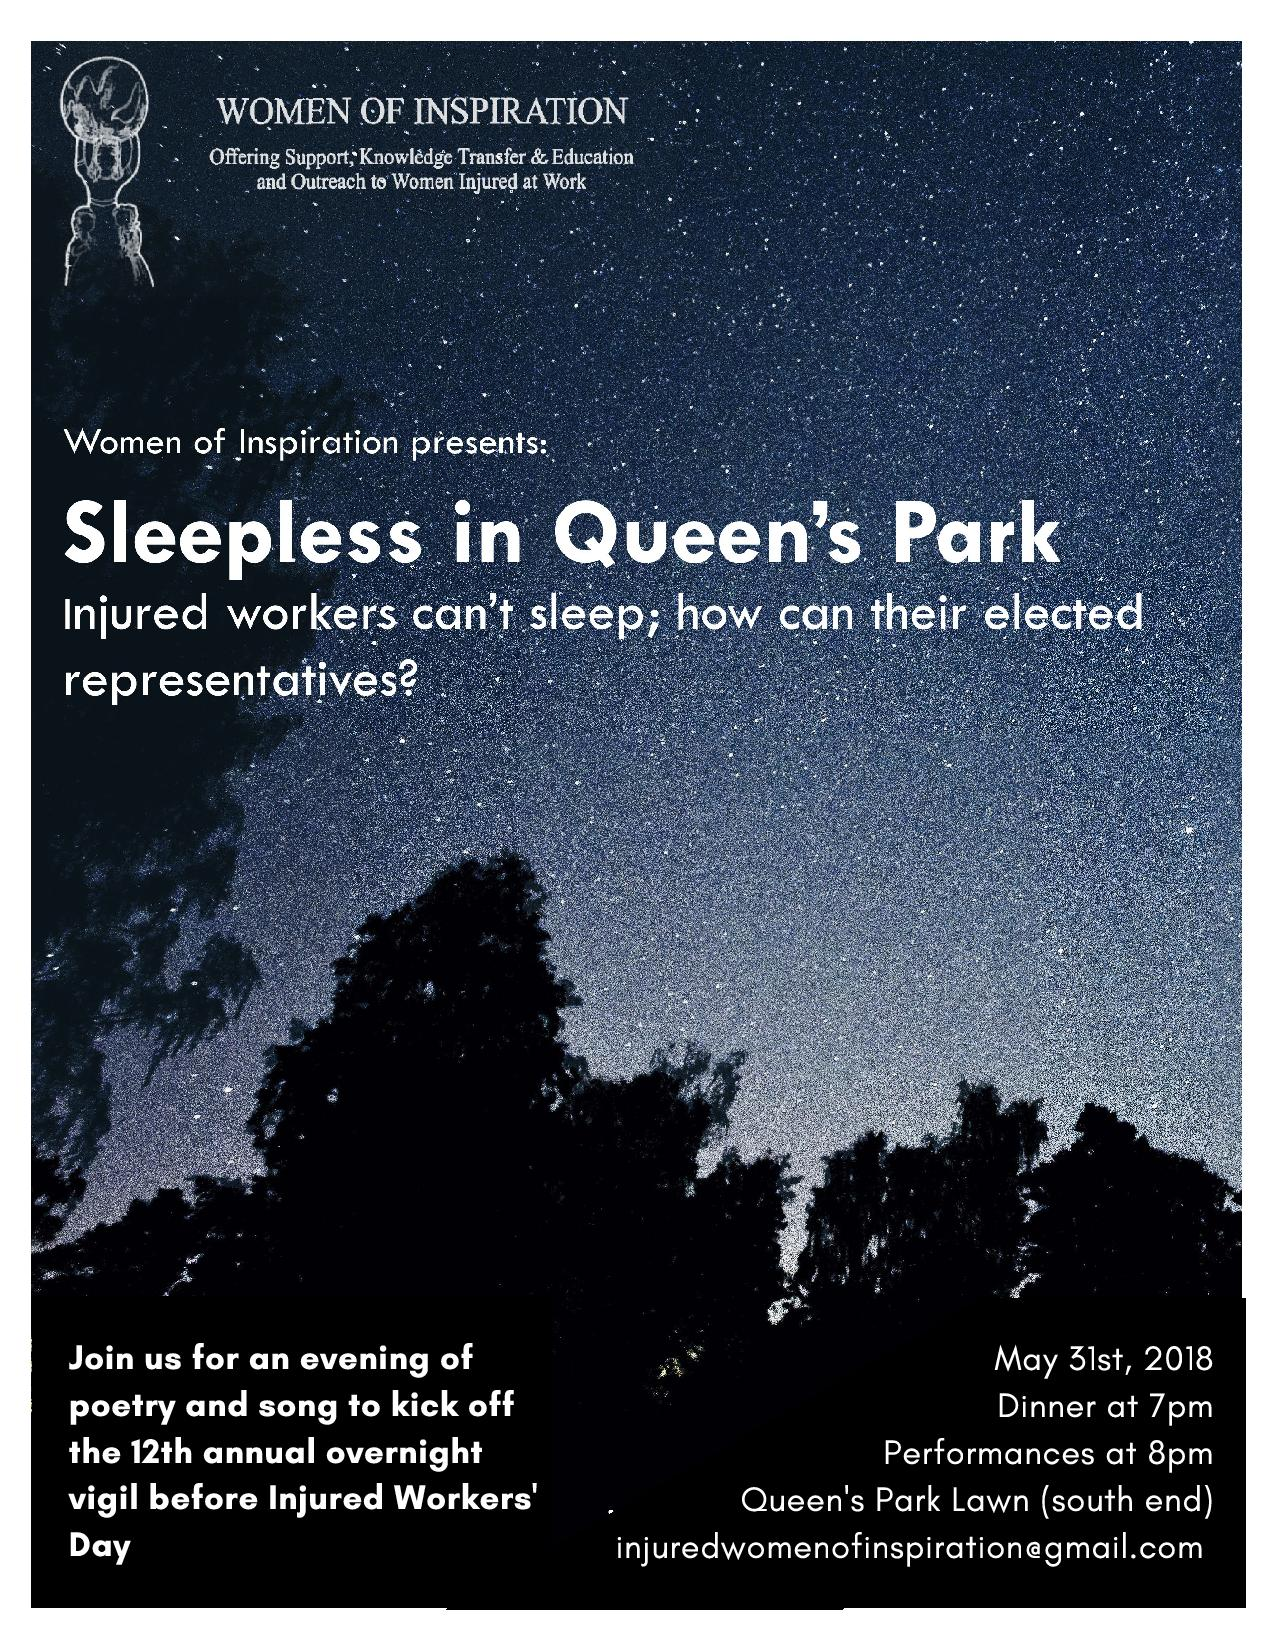 May 31 2018 Women of Inspiration vigil for injured workers at Queen's Park